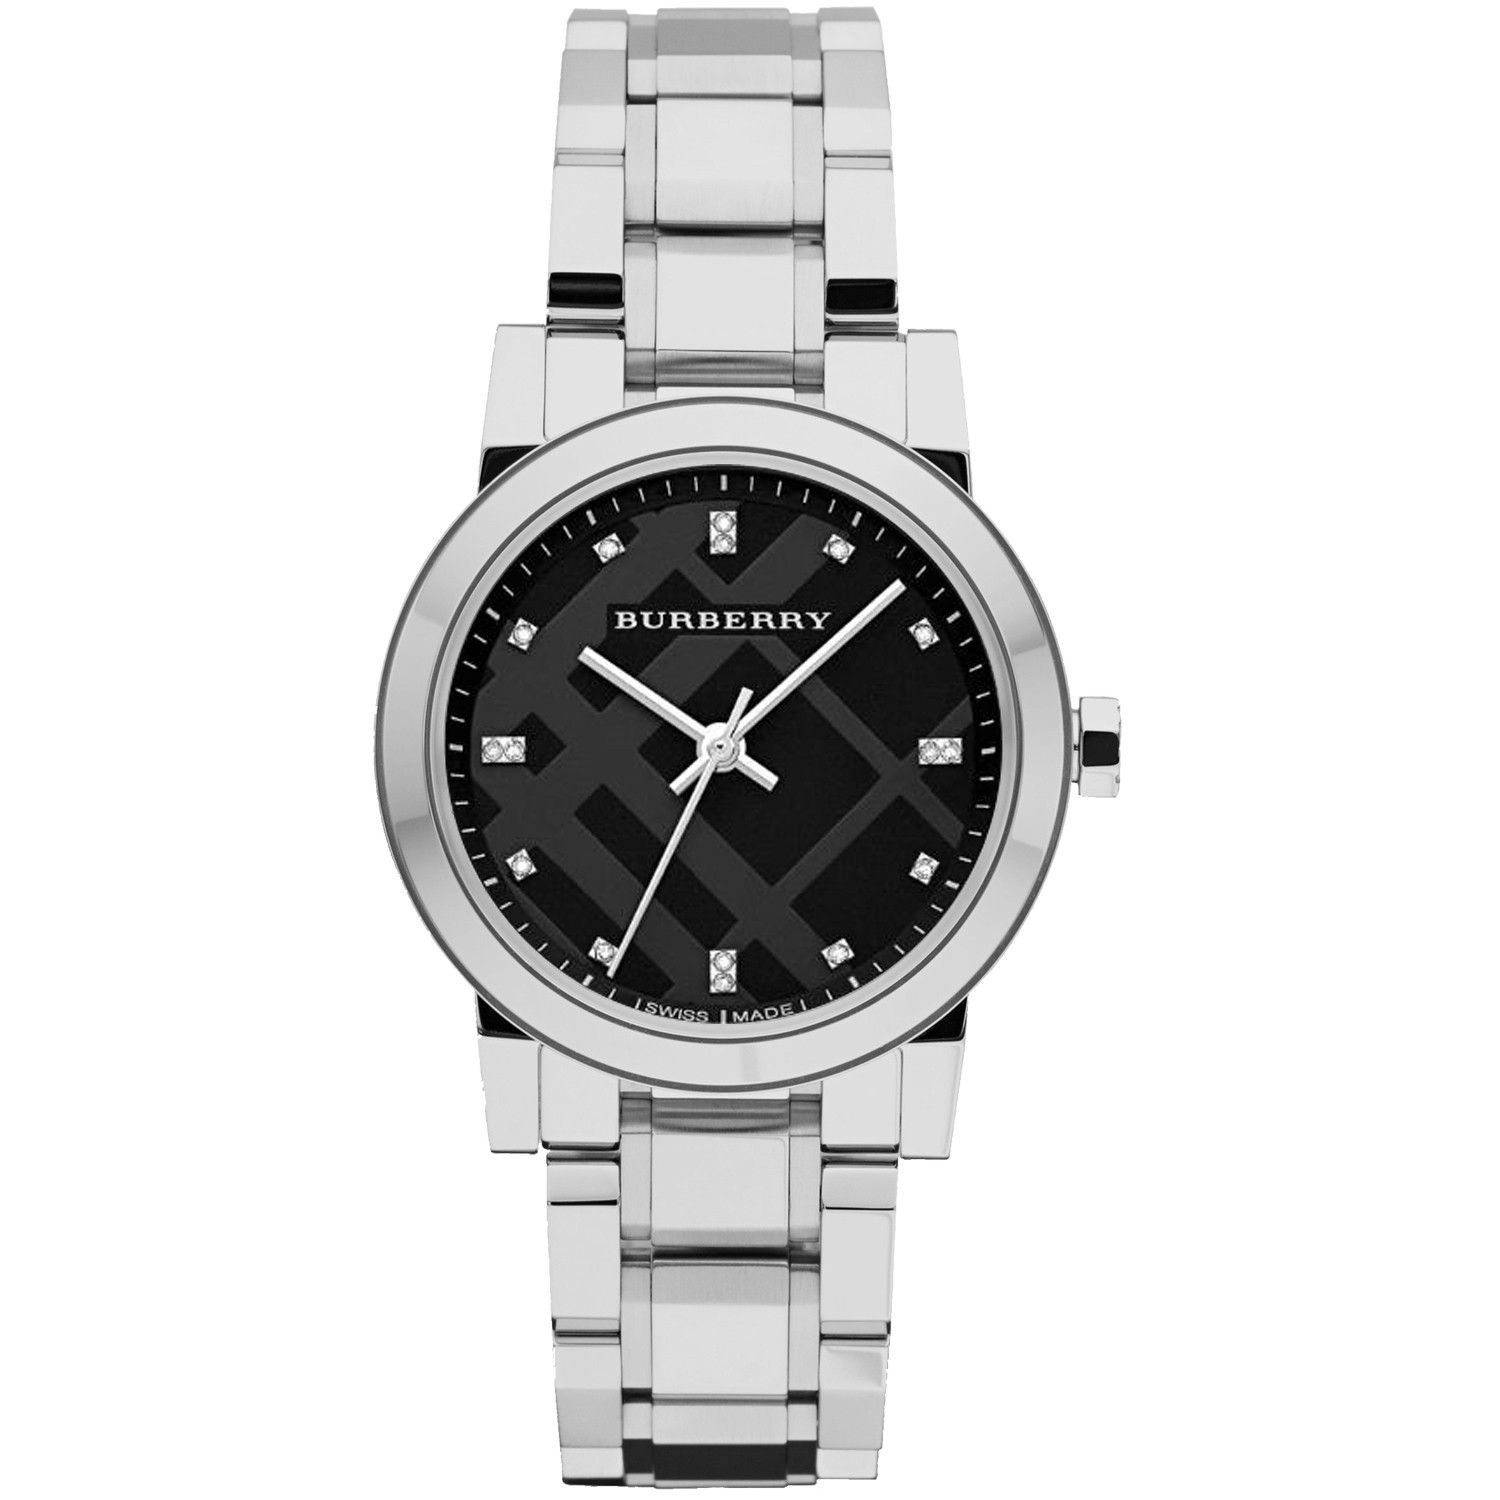 Burberry Women's Ceramic Black Dial Watch stainless Steel